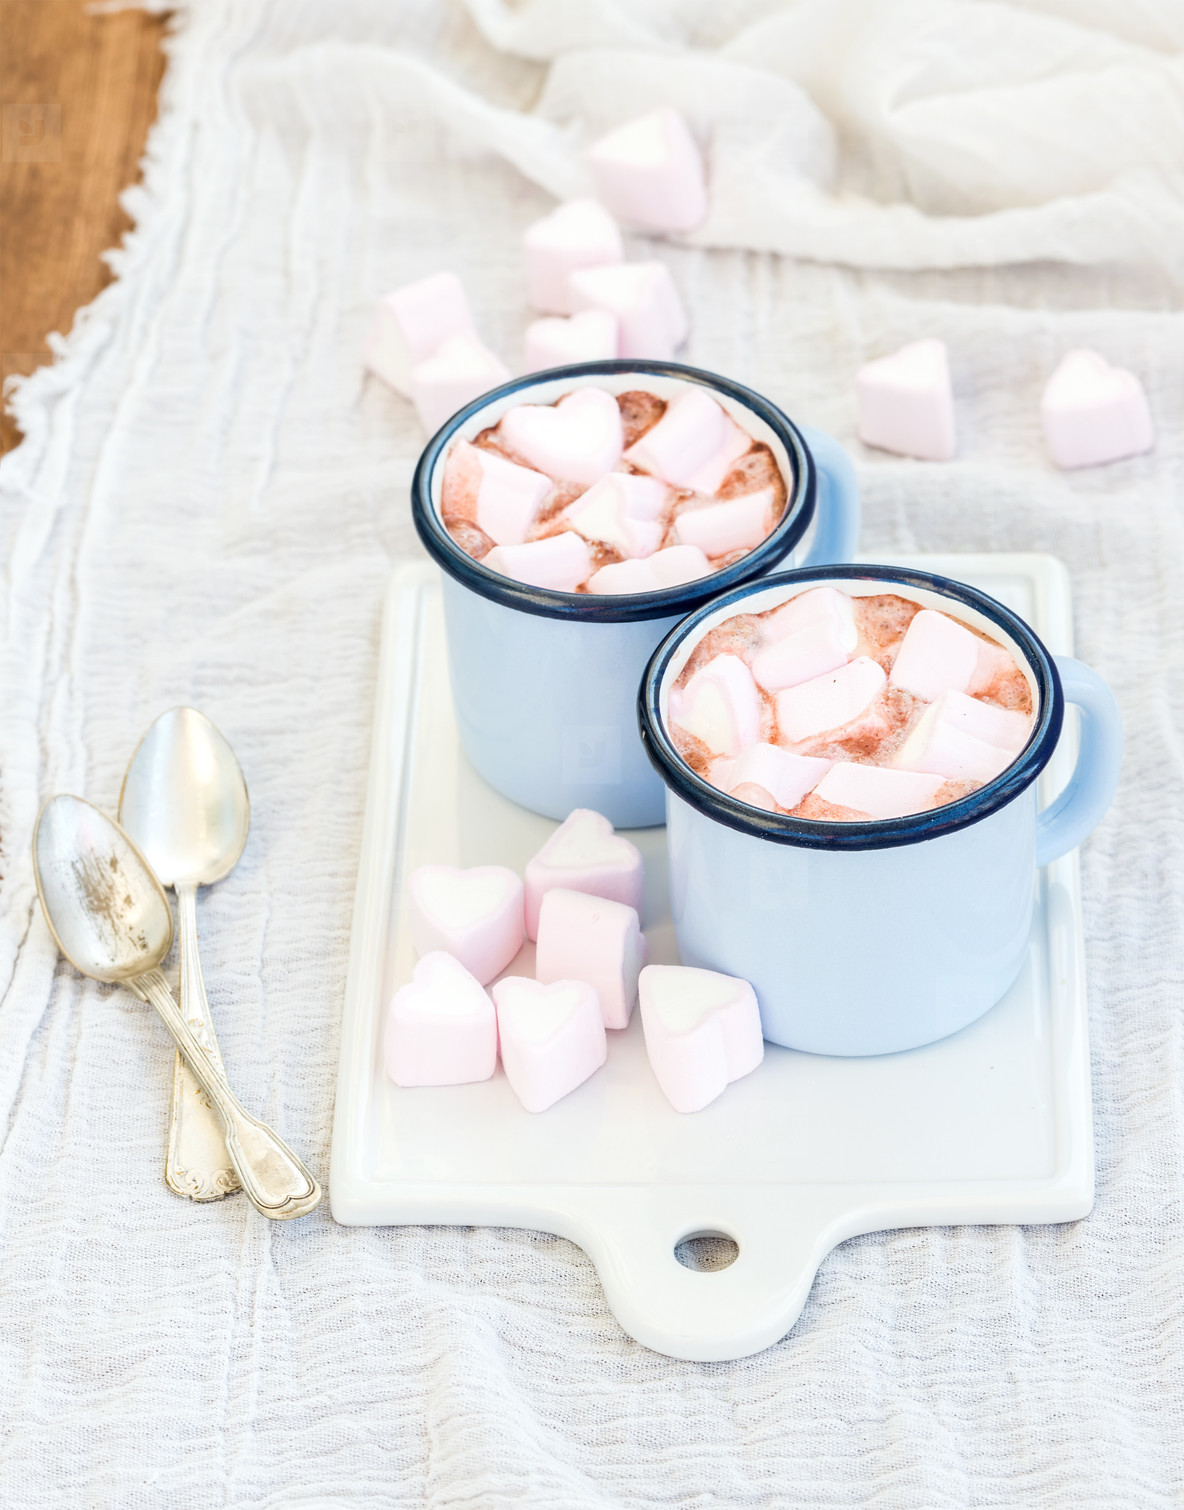 Photos - Saint Valentine's holiday greeting set. Hot chocolate and heart shaped marshmallows in old enamel mugs on white ceramic serving board